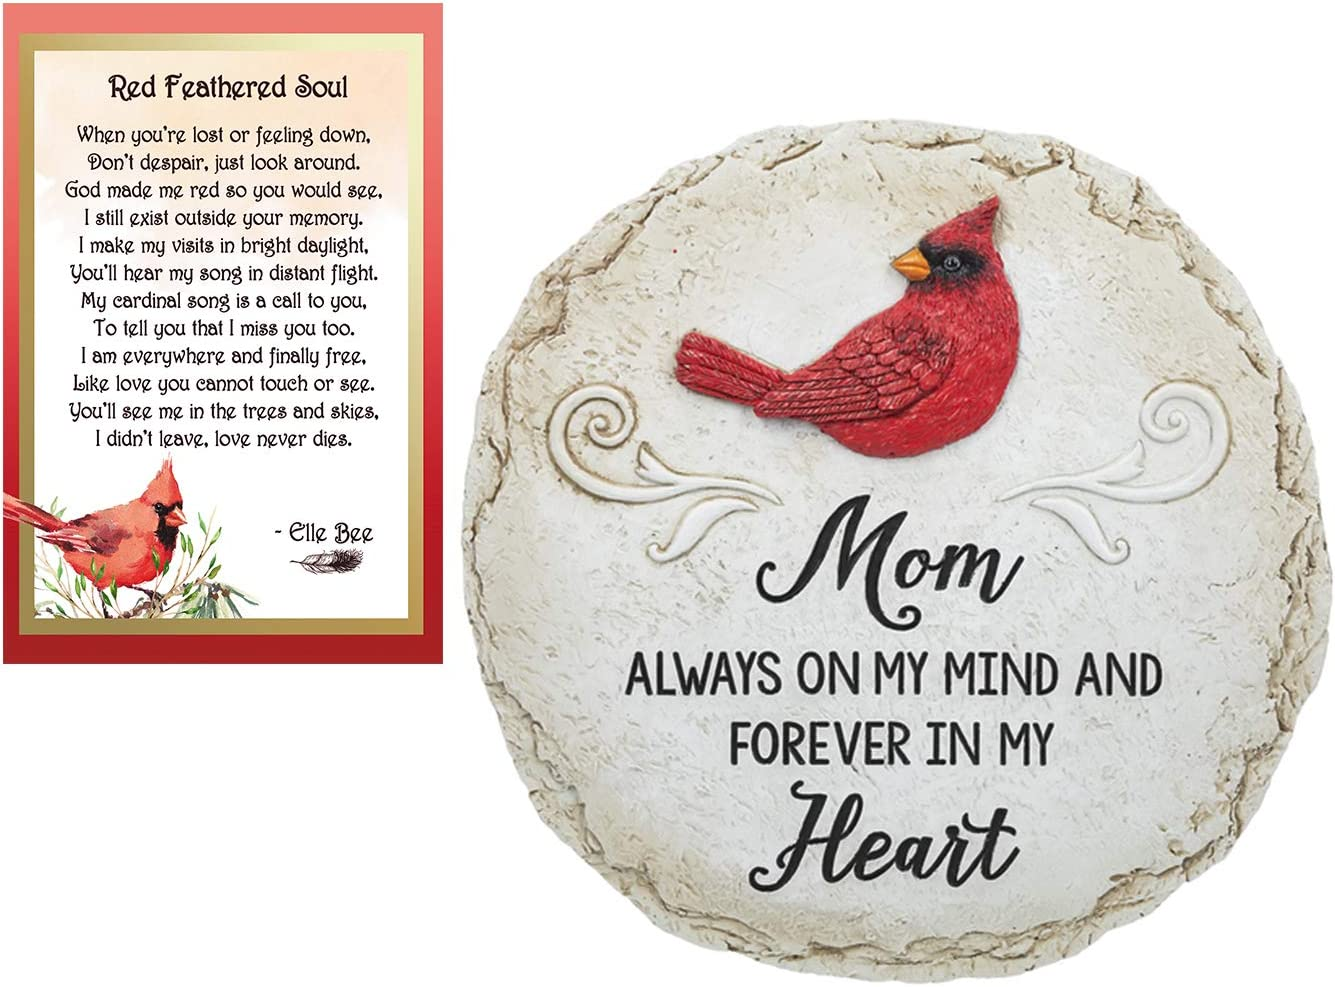 Lola Bella Gifts and Ganz Mom Always on My Mind and Forever in My Heart Cardinal Memorial Stepping Stone with Red Feathered Soul Poem Card Grief Sympathy Memorial Gift